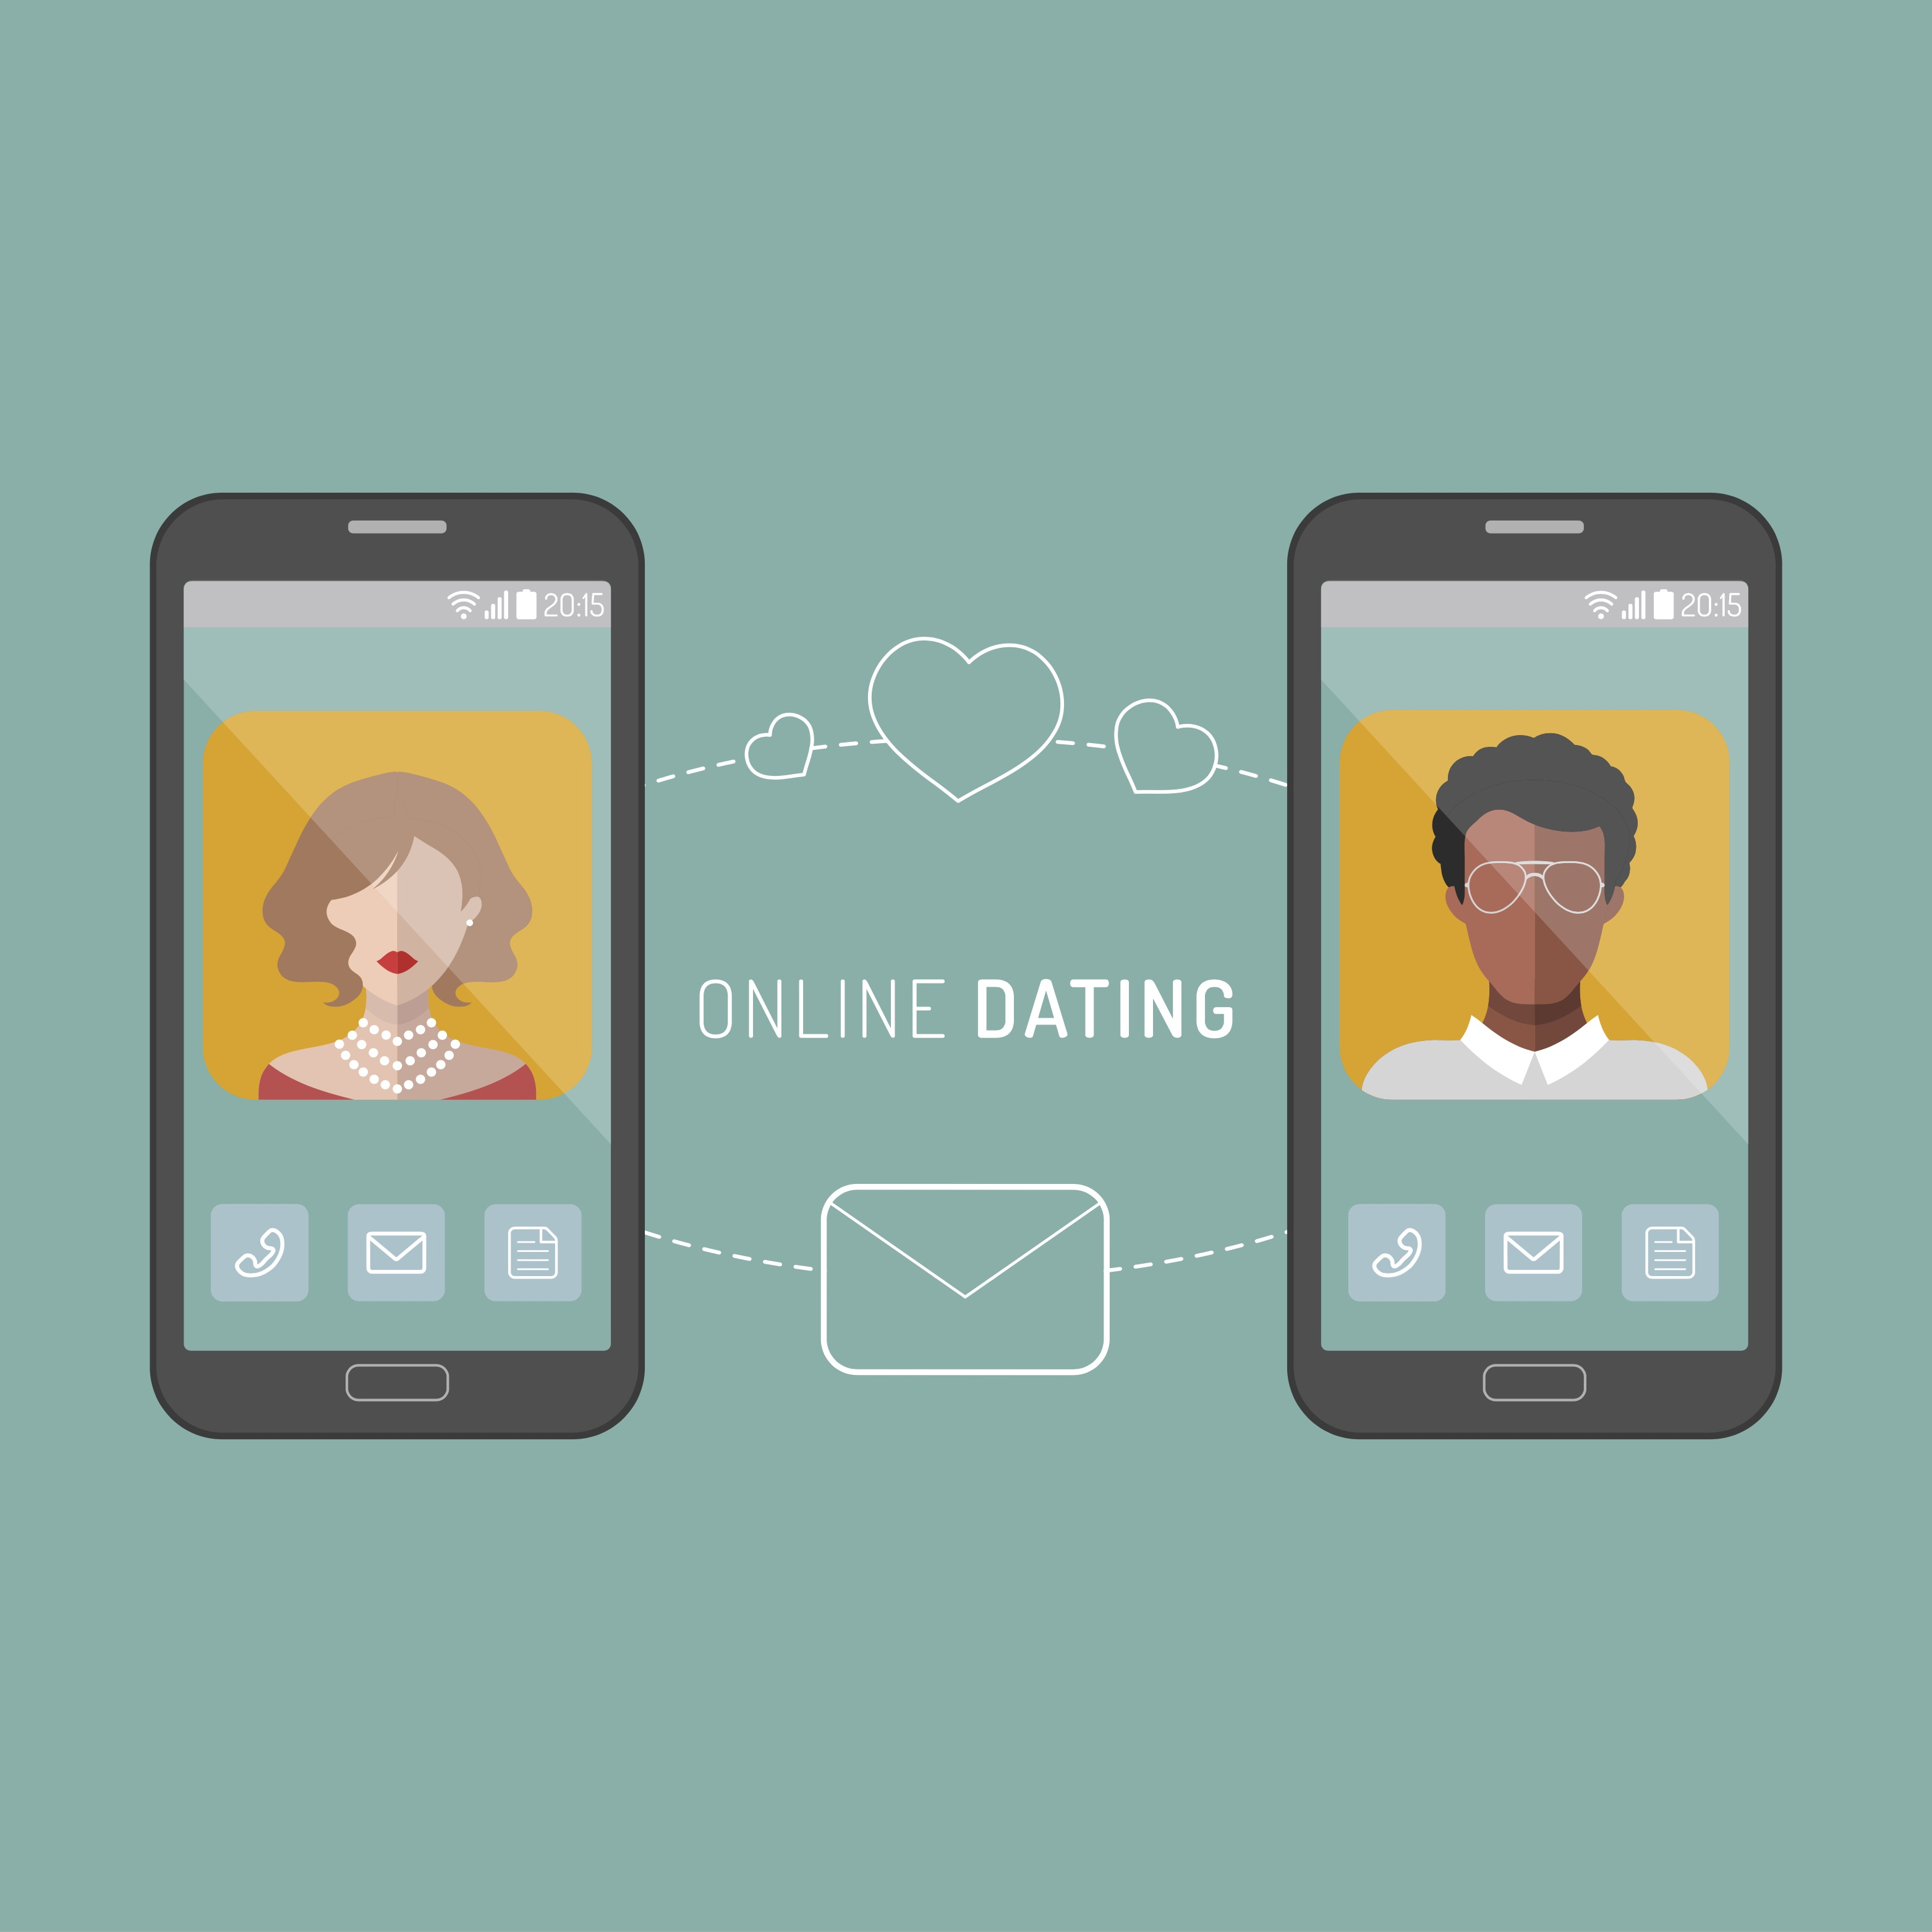 Meet the new dating app that helps you find love the old-fashioned way